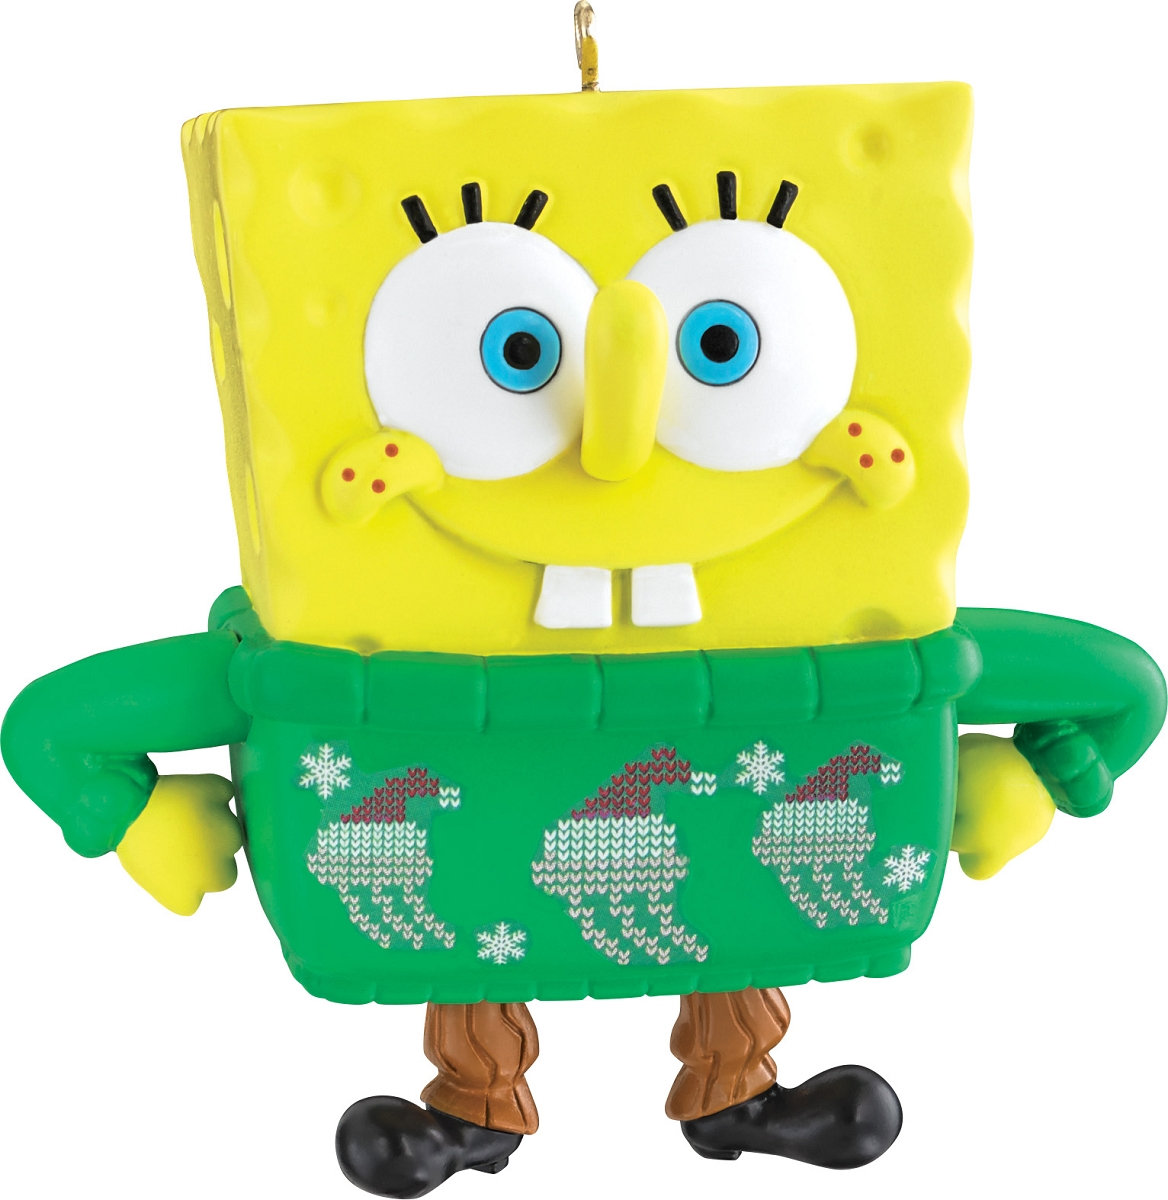 2016 spongebob squarepants carlton ornament from american 2016 spongebob squarepants carlton ornament from american greetings at hooked on ornaments kristyandbryce Choice Image